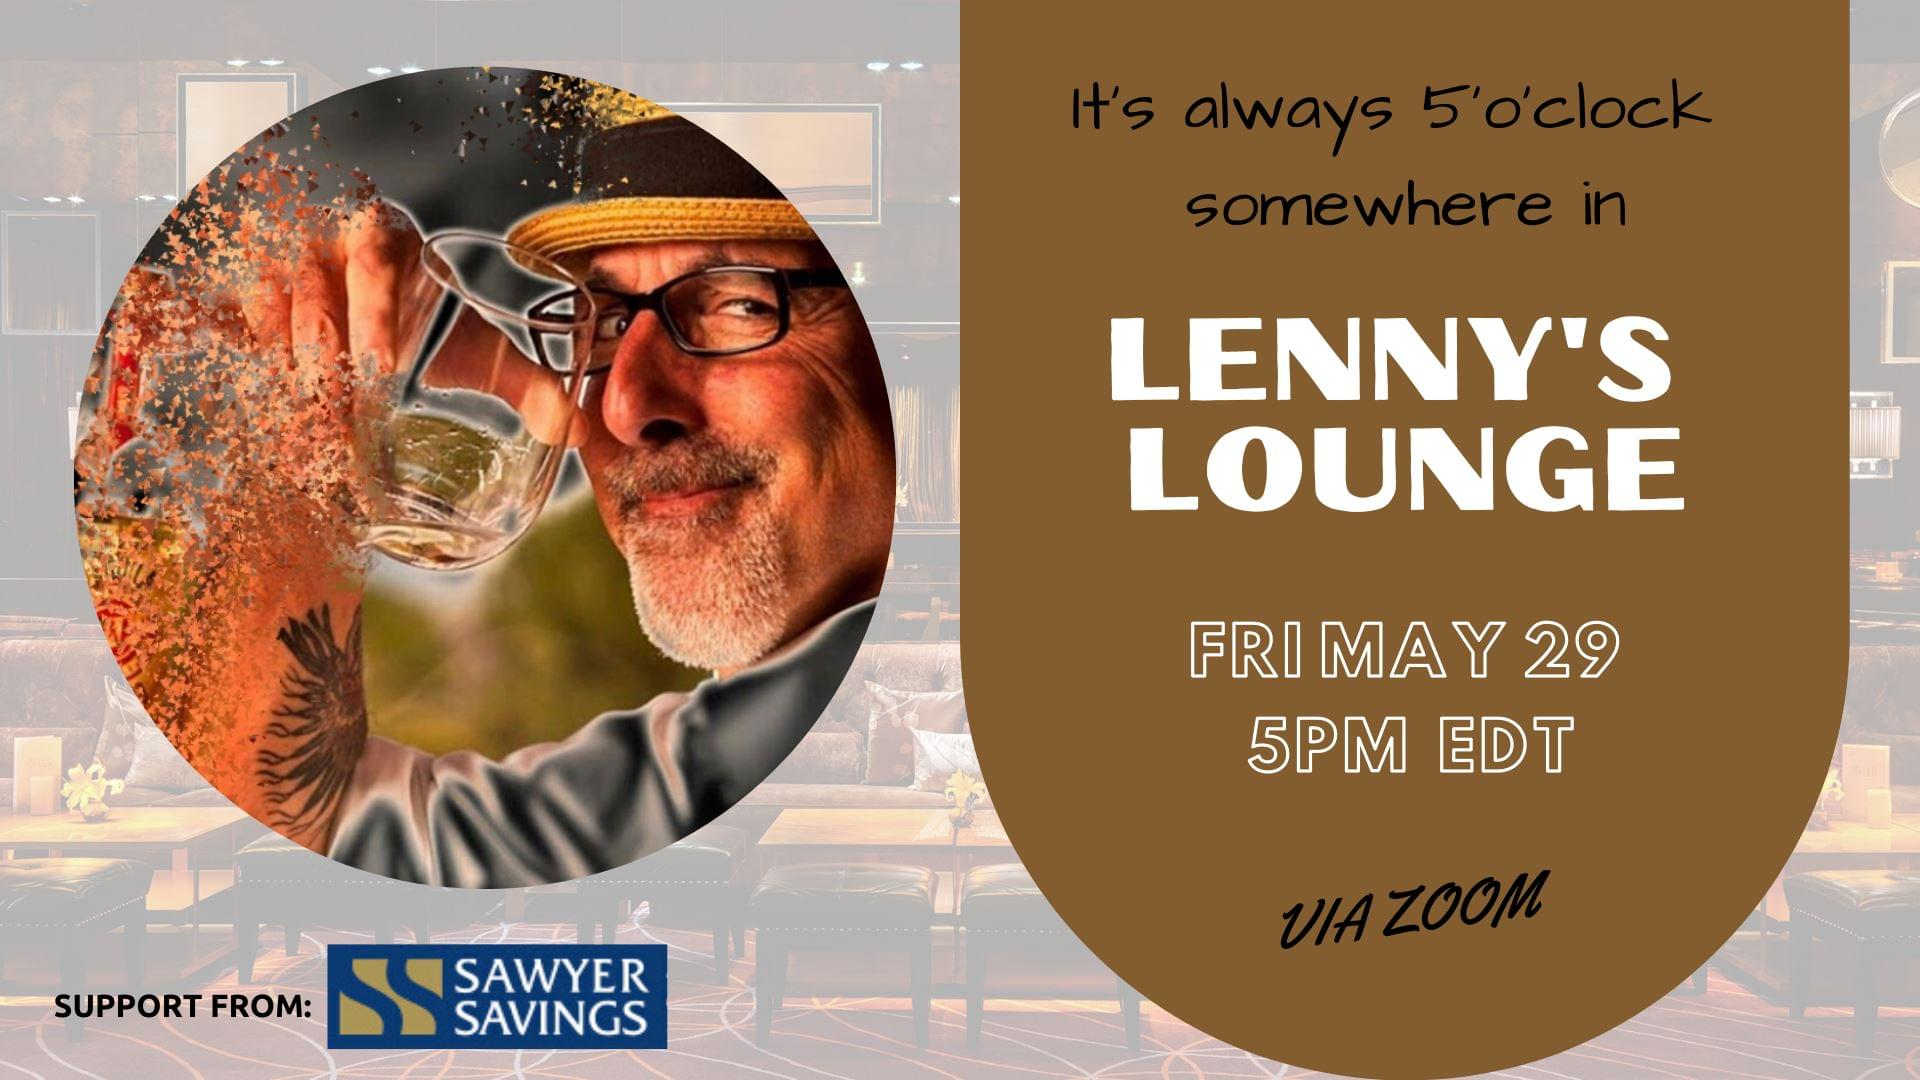 It's always 5'o'clock somewhere in Lenny's Lounge